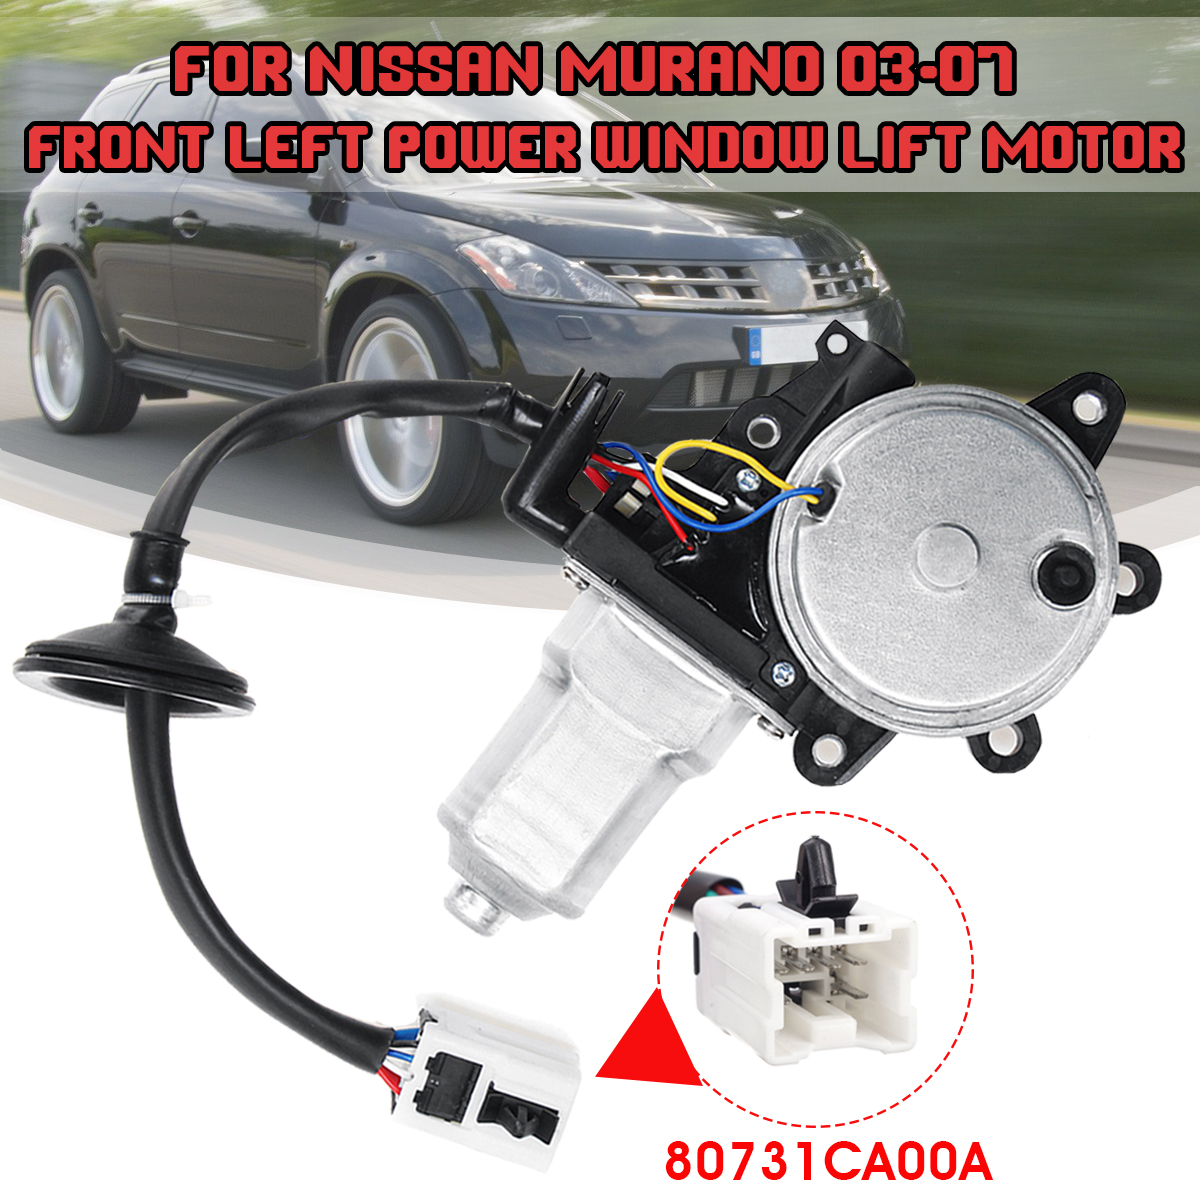 Hot New Power Front Left Driver Side LH Window Motor for Nissan Murano 2003 2004 2005 2006 2007 80731CA00A